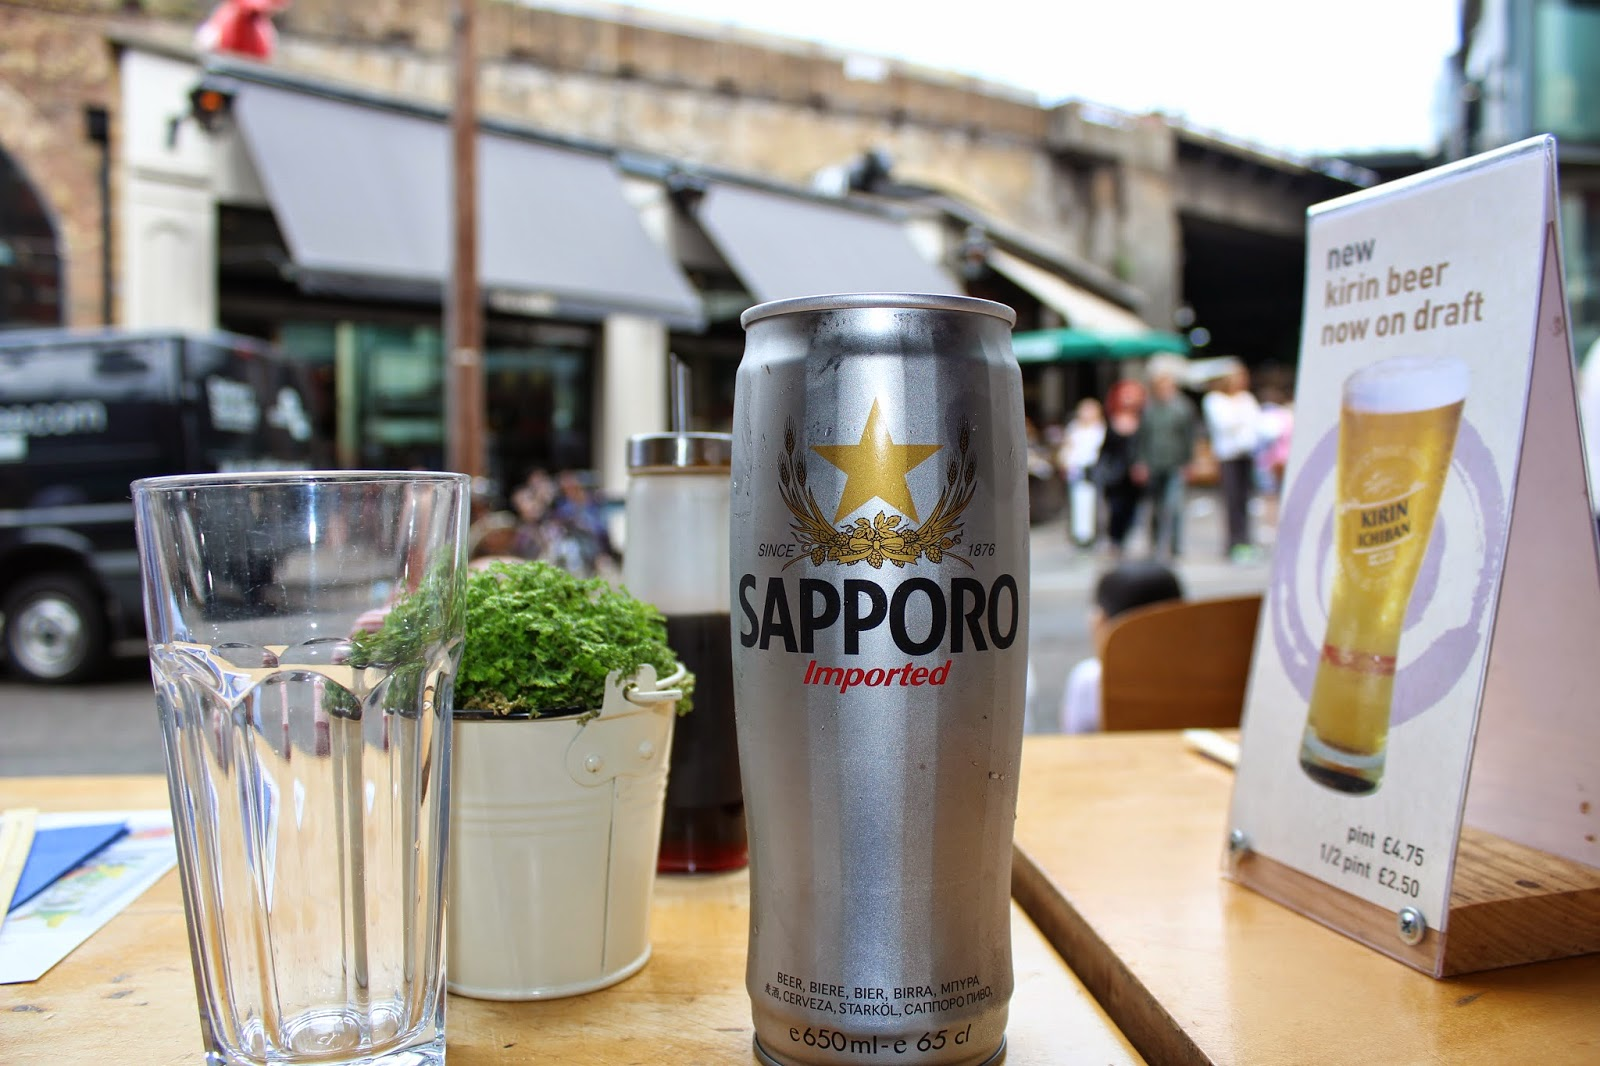 Sapporo beer at Feng sushi